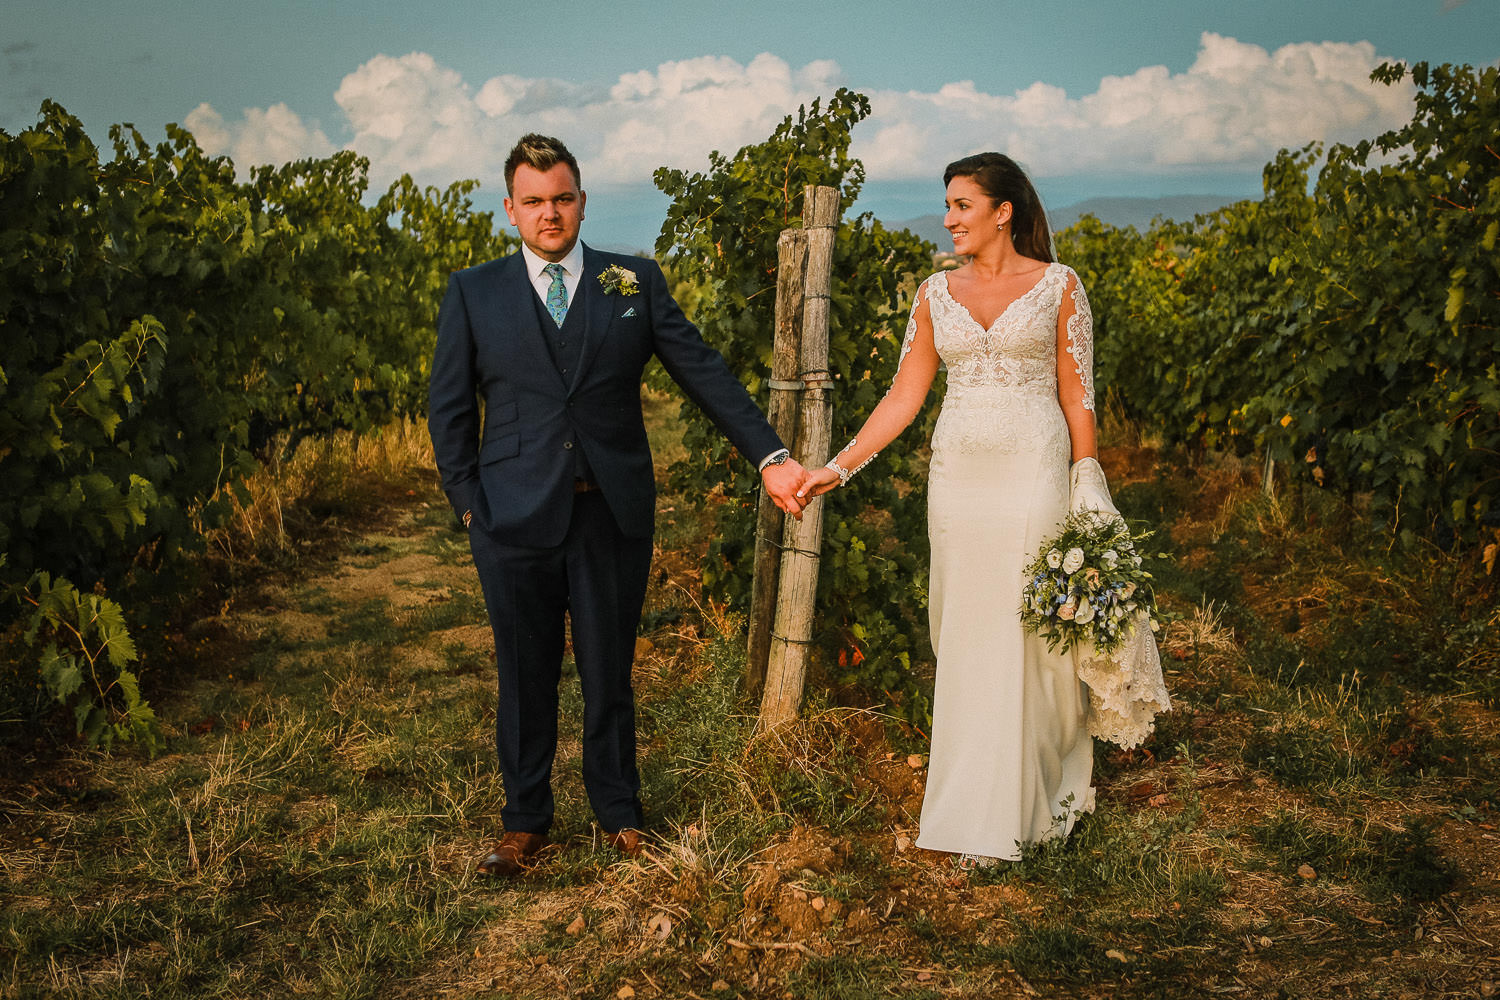 Bride and Groom in Tuscany Vine yard holding hands